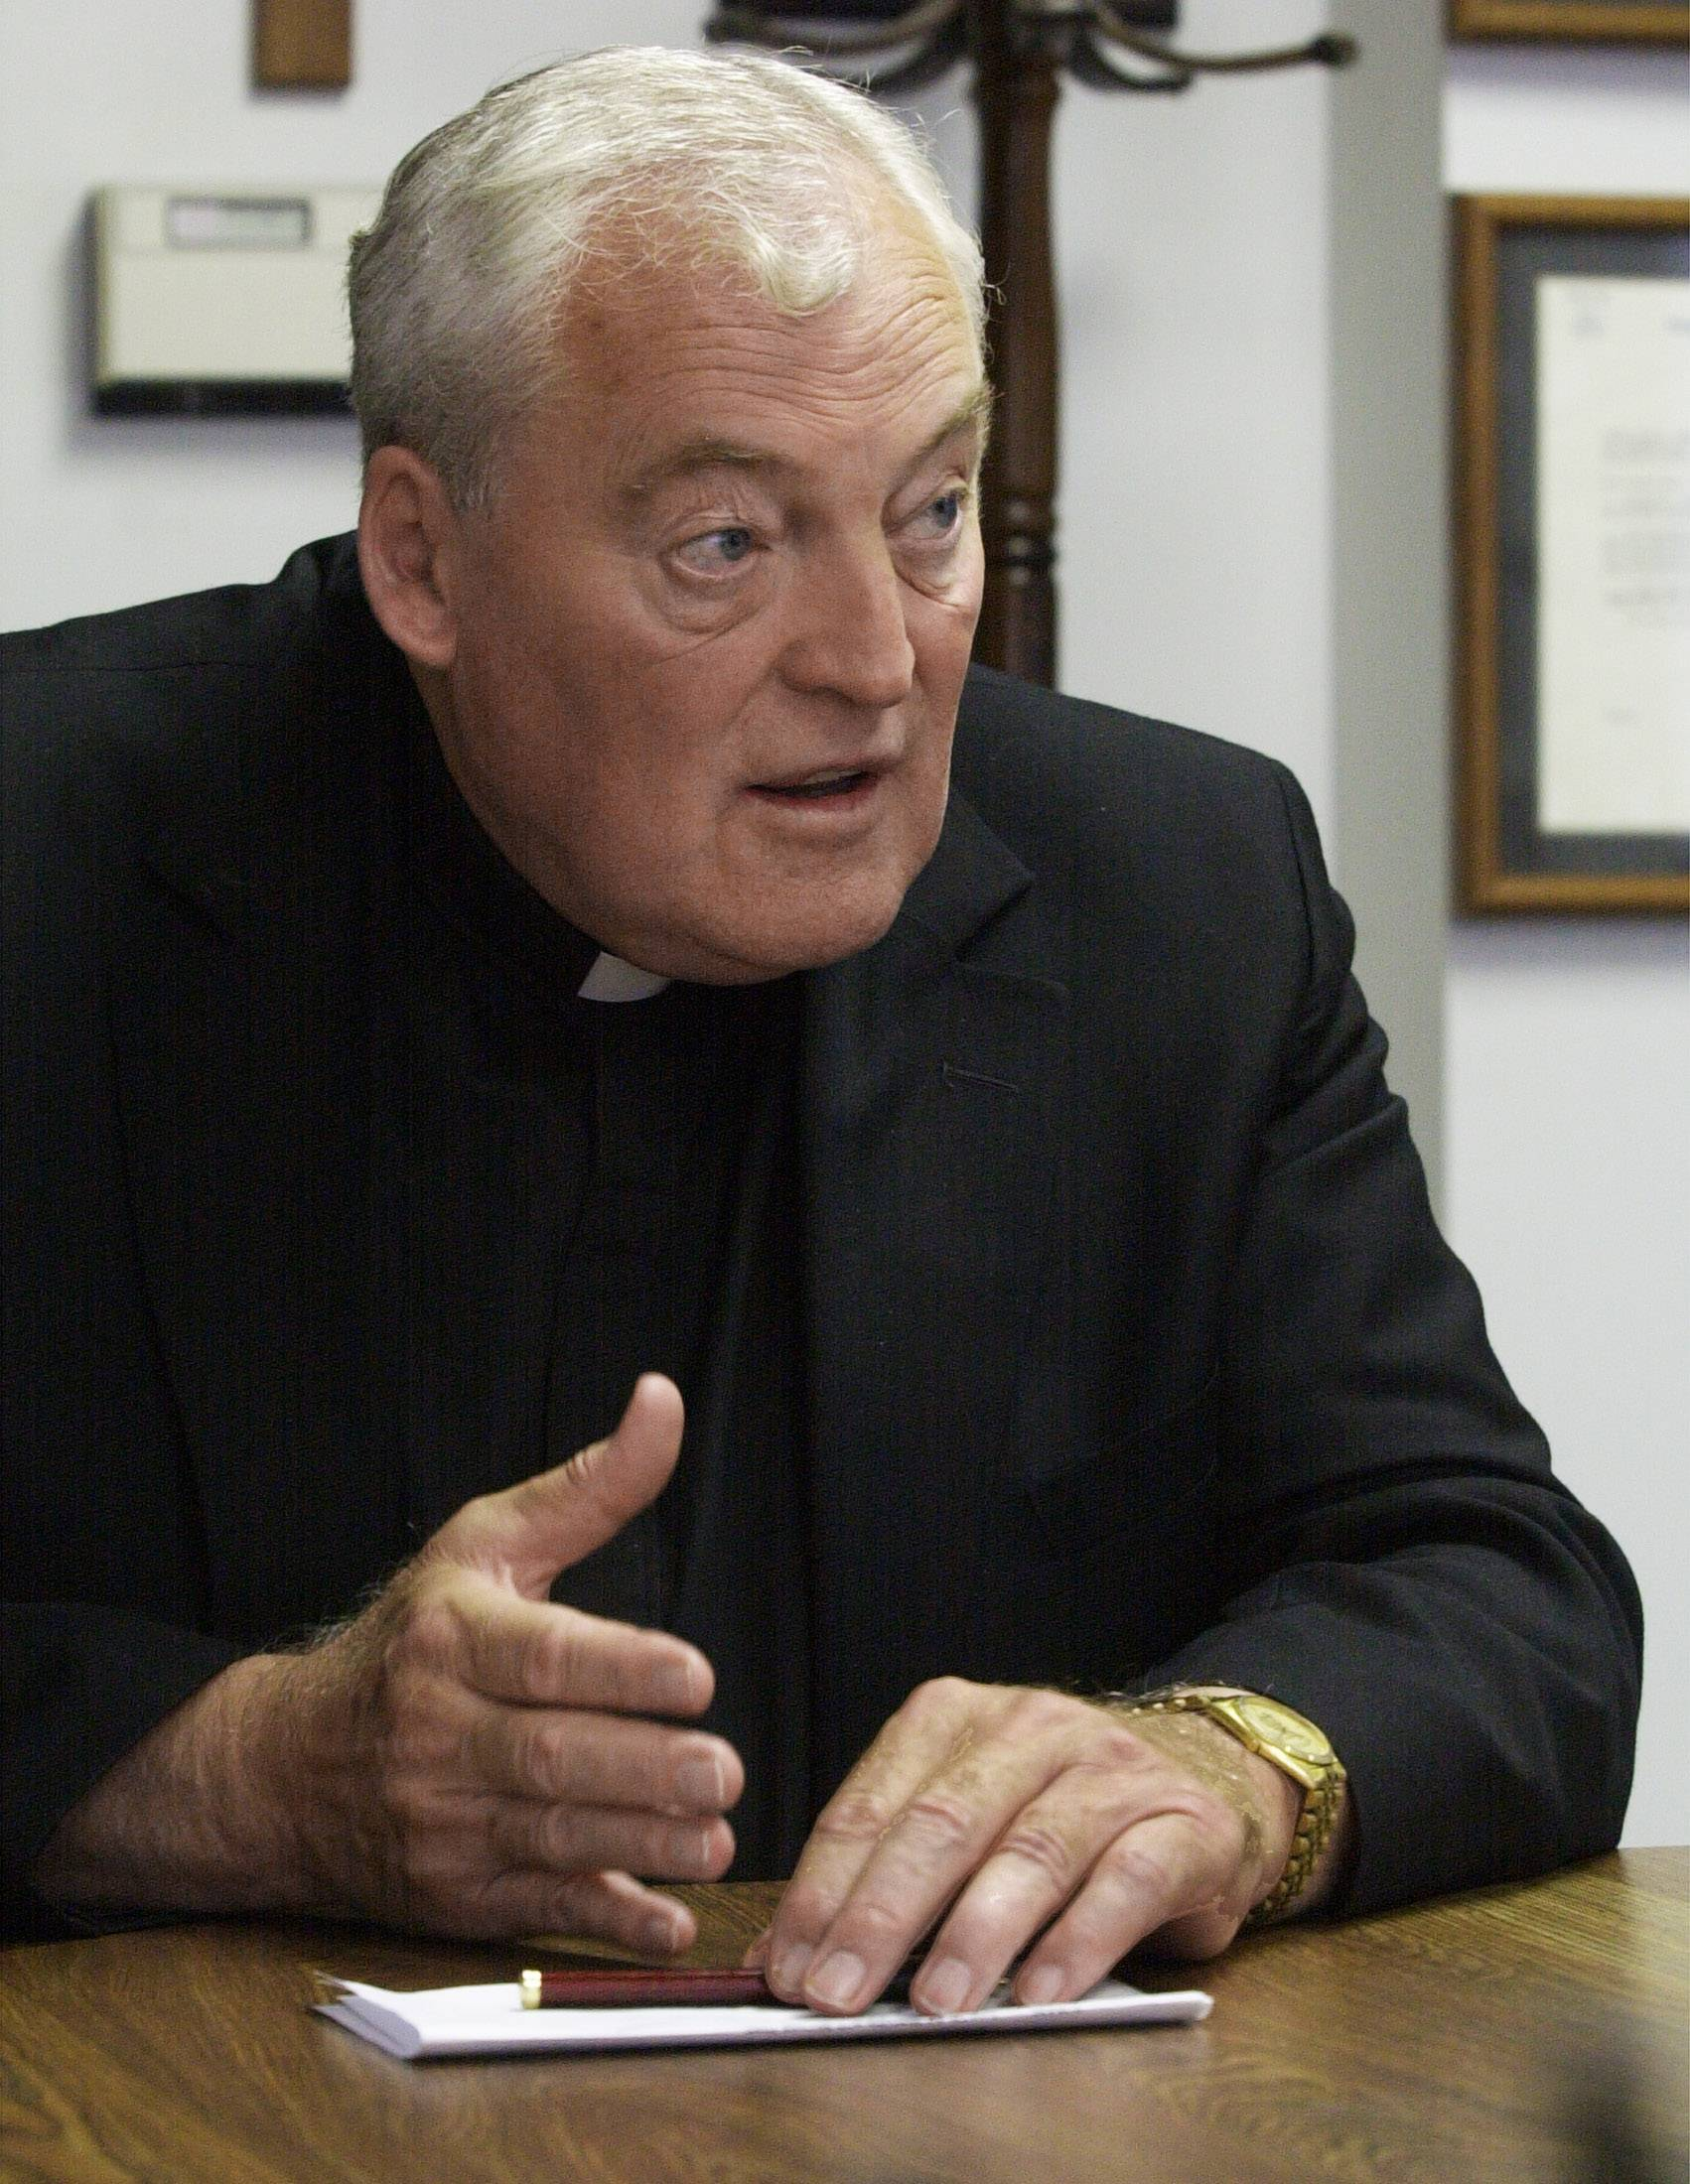 The Rev. John Smyth has been accused of sexually abusing minors during the end of his tenure as leader of Maryville Academy in Des Plaines, Archdiocese of Chicago officials said Friday.